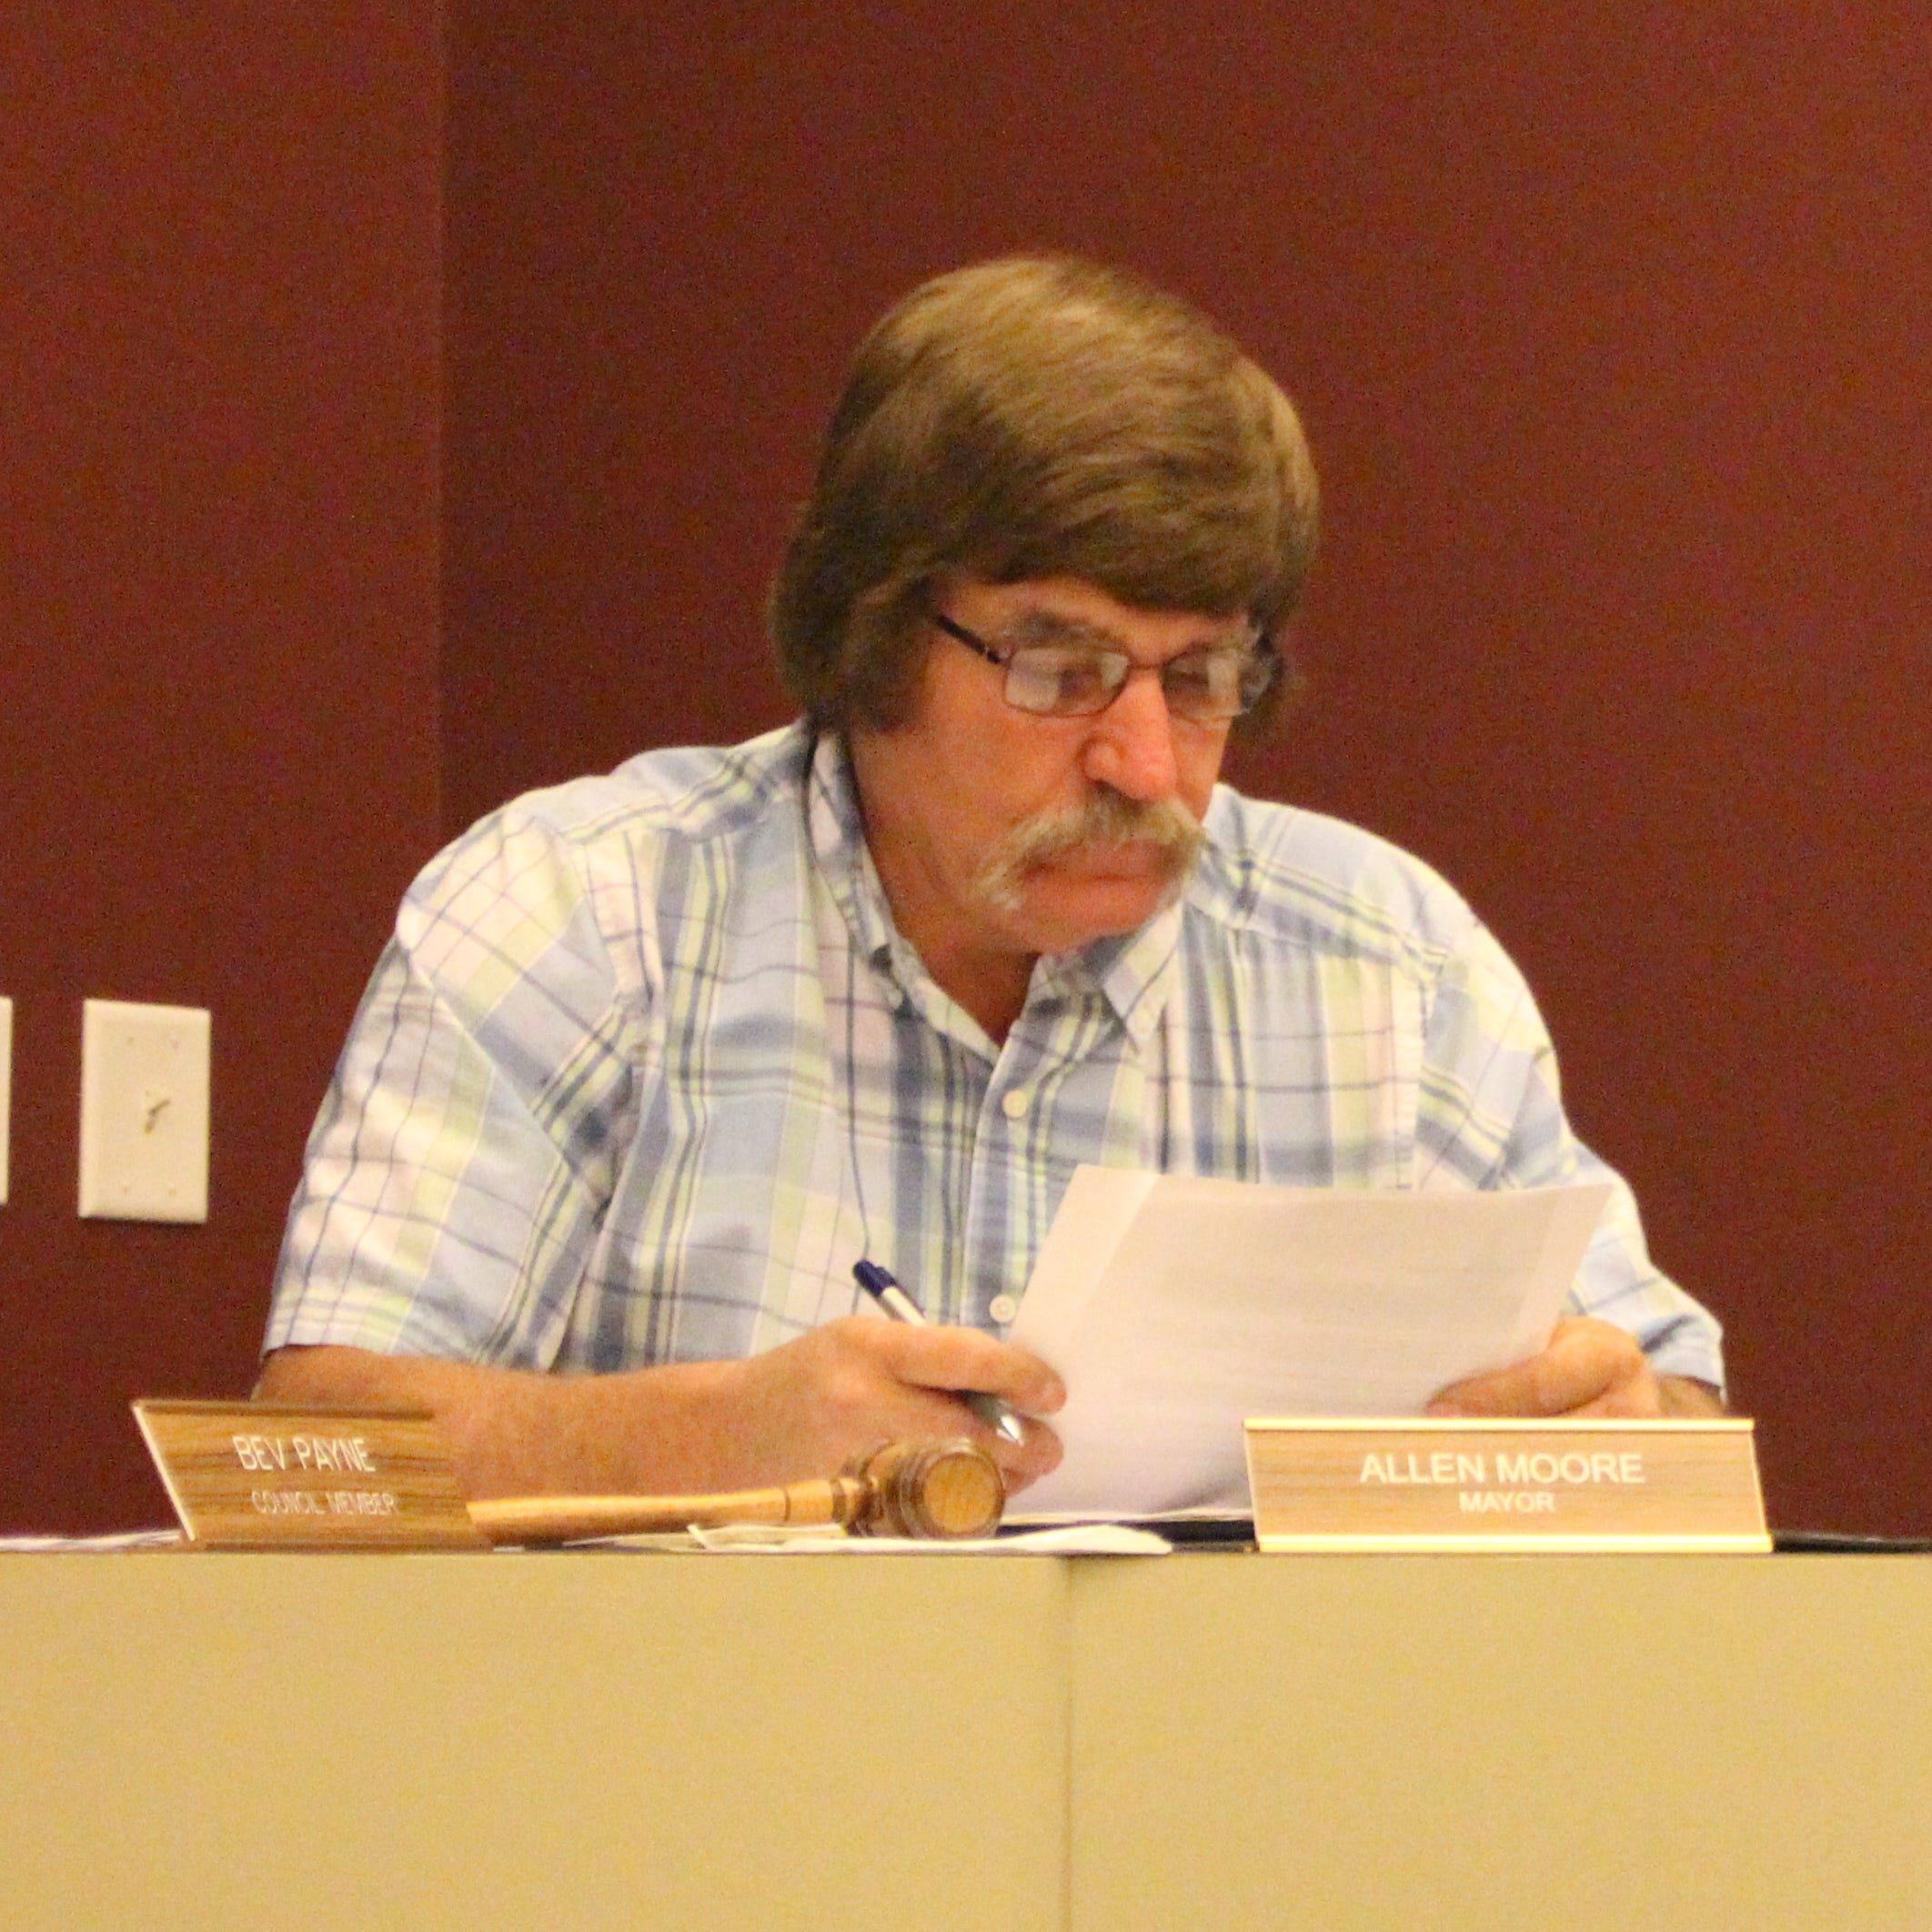 Crestline Mayor Allen Moore resigns over racial slur video